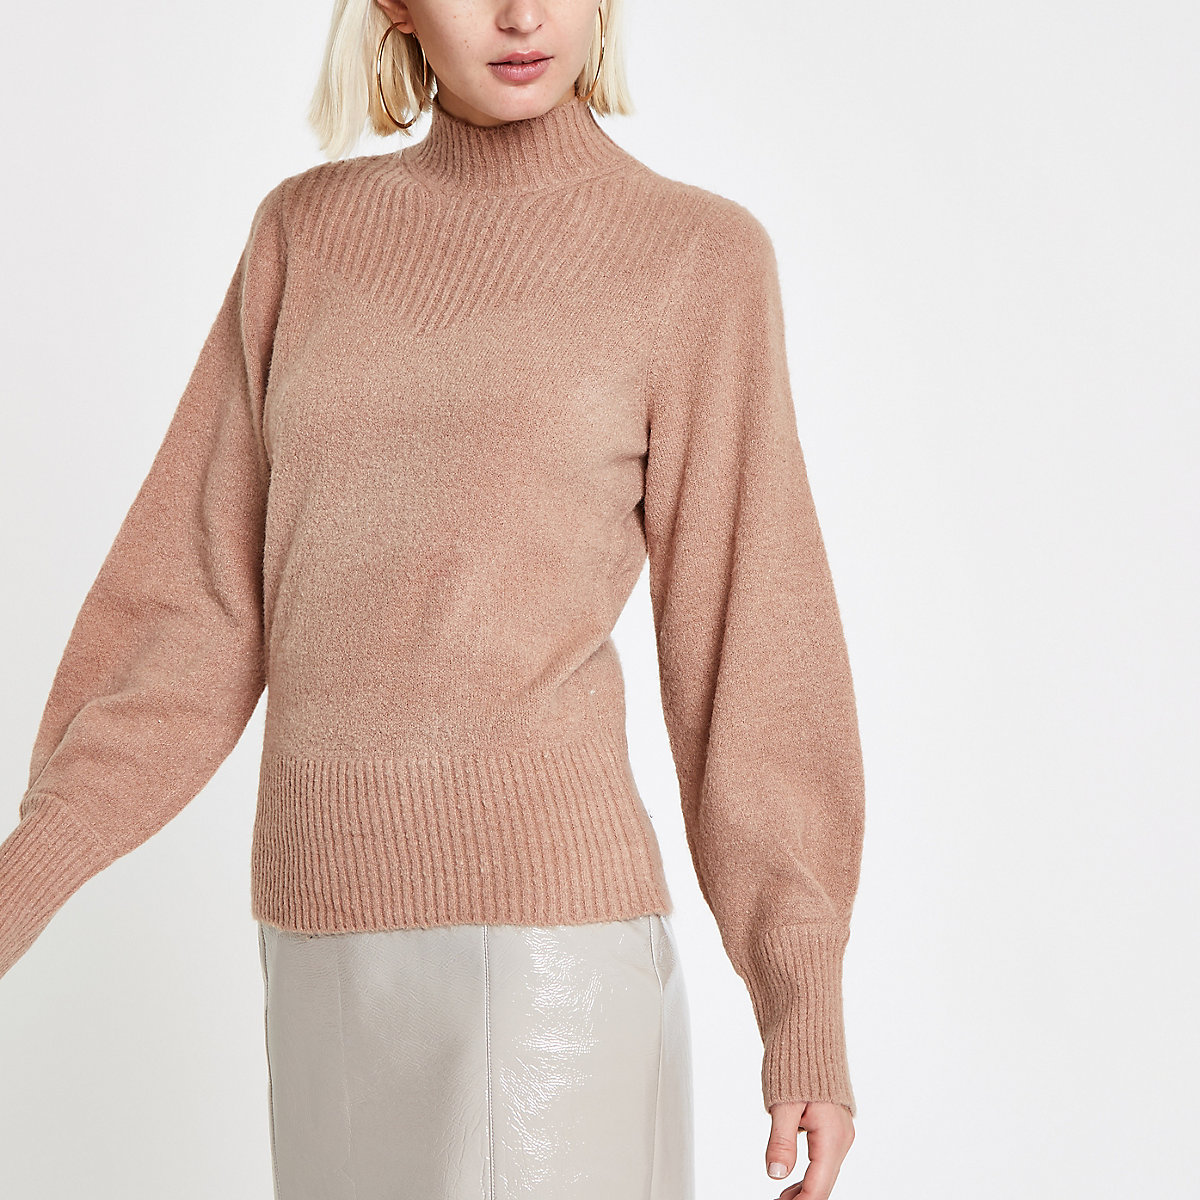 Beige knit turtle neck jumper